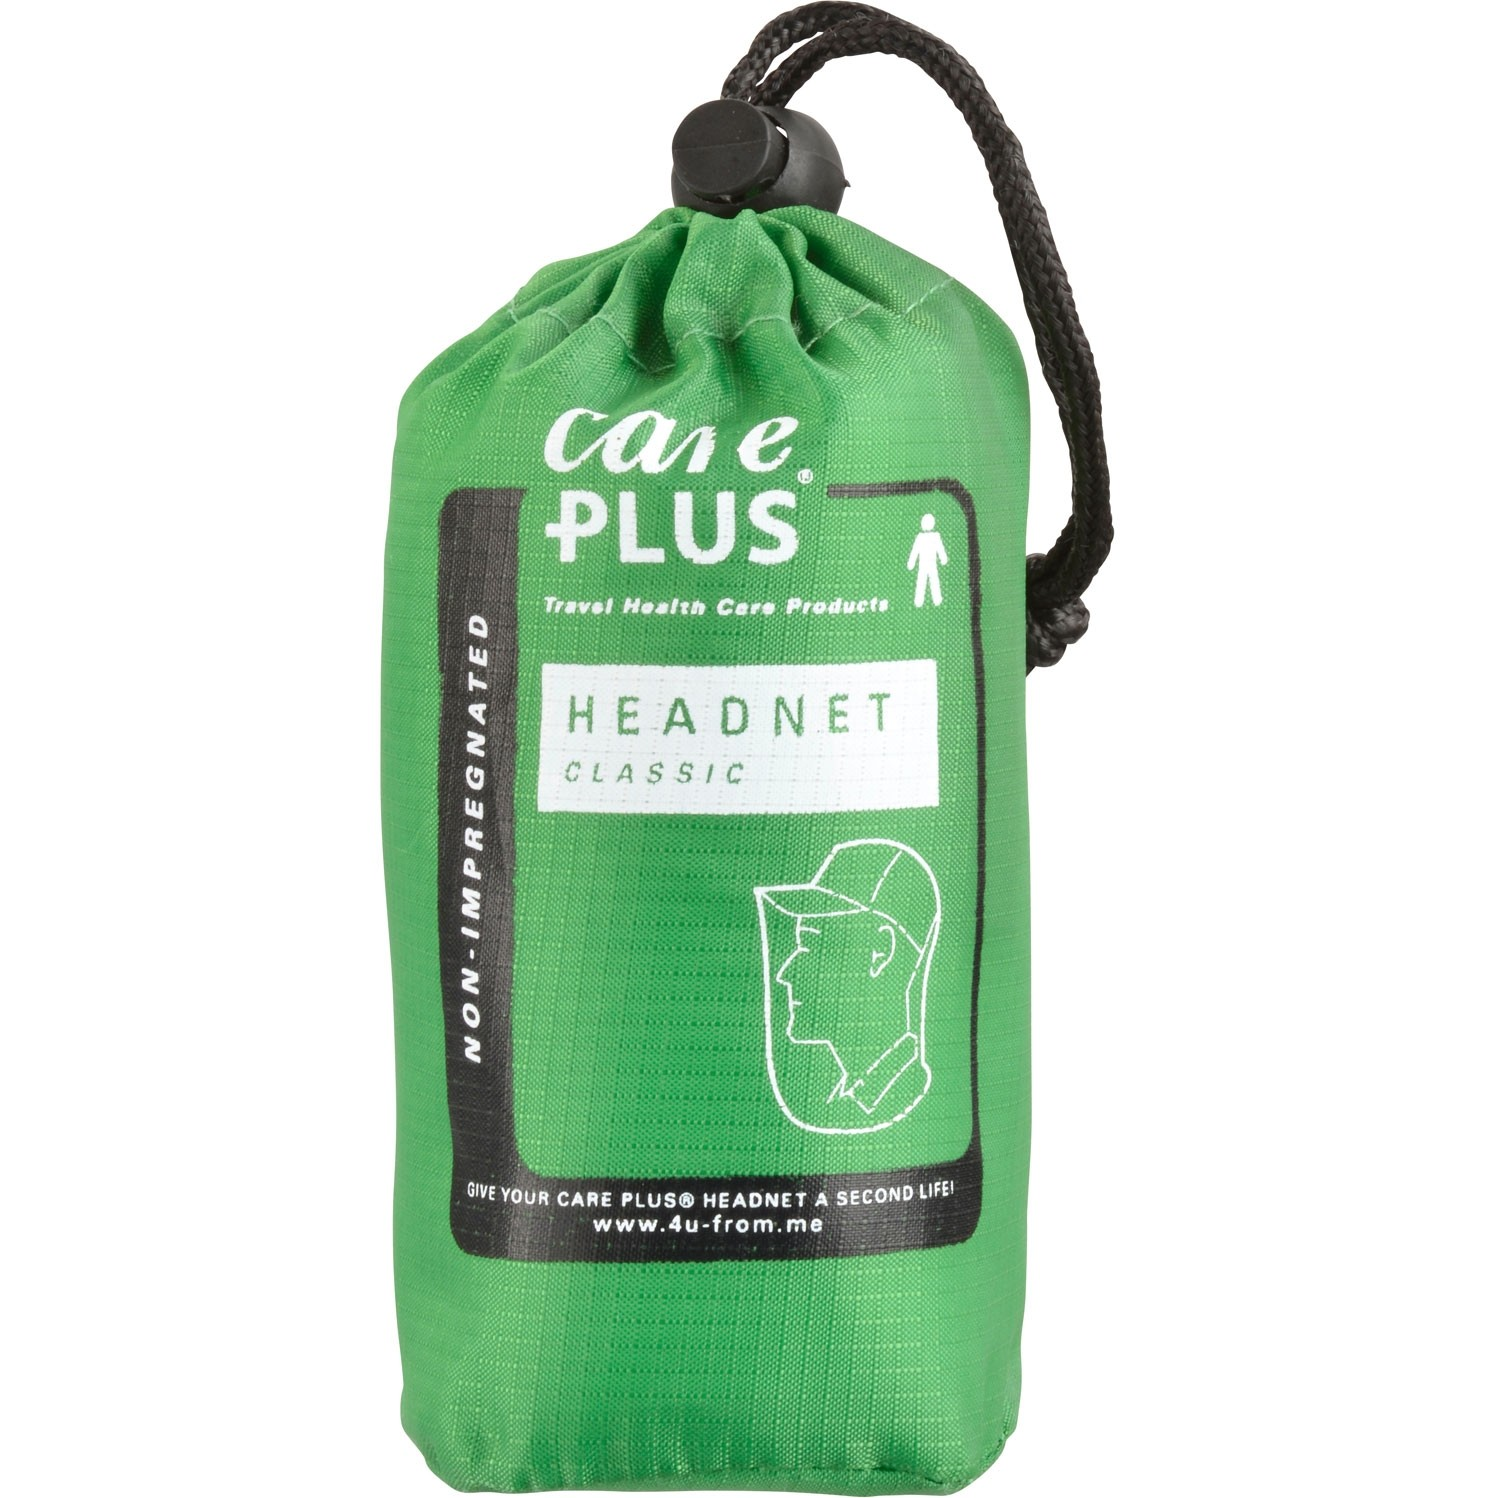 Care Plus Classic Headnet - Green